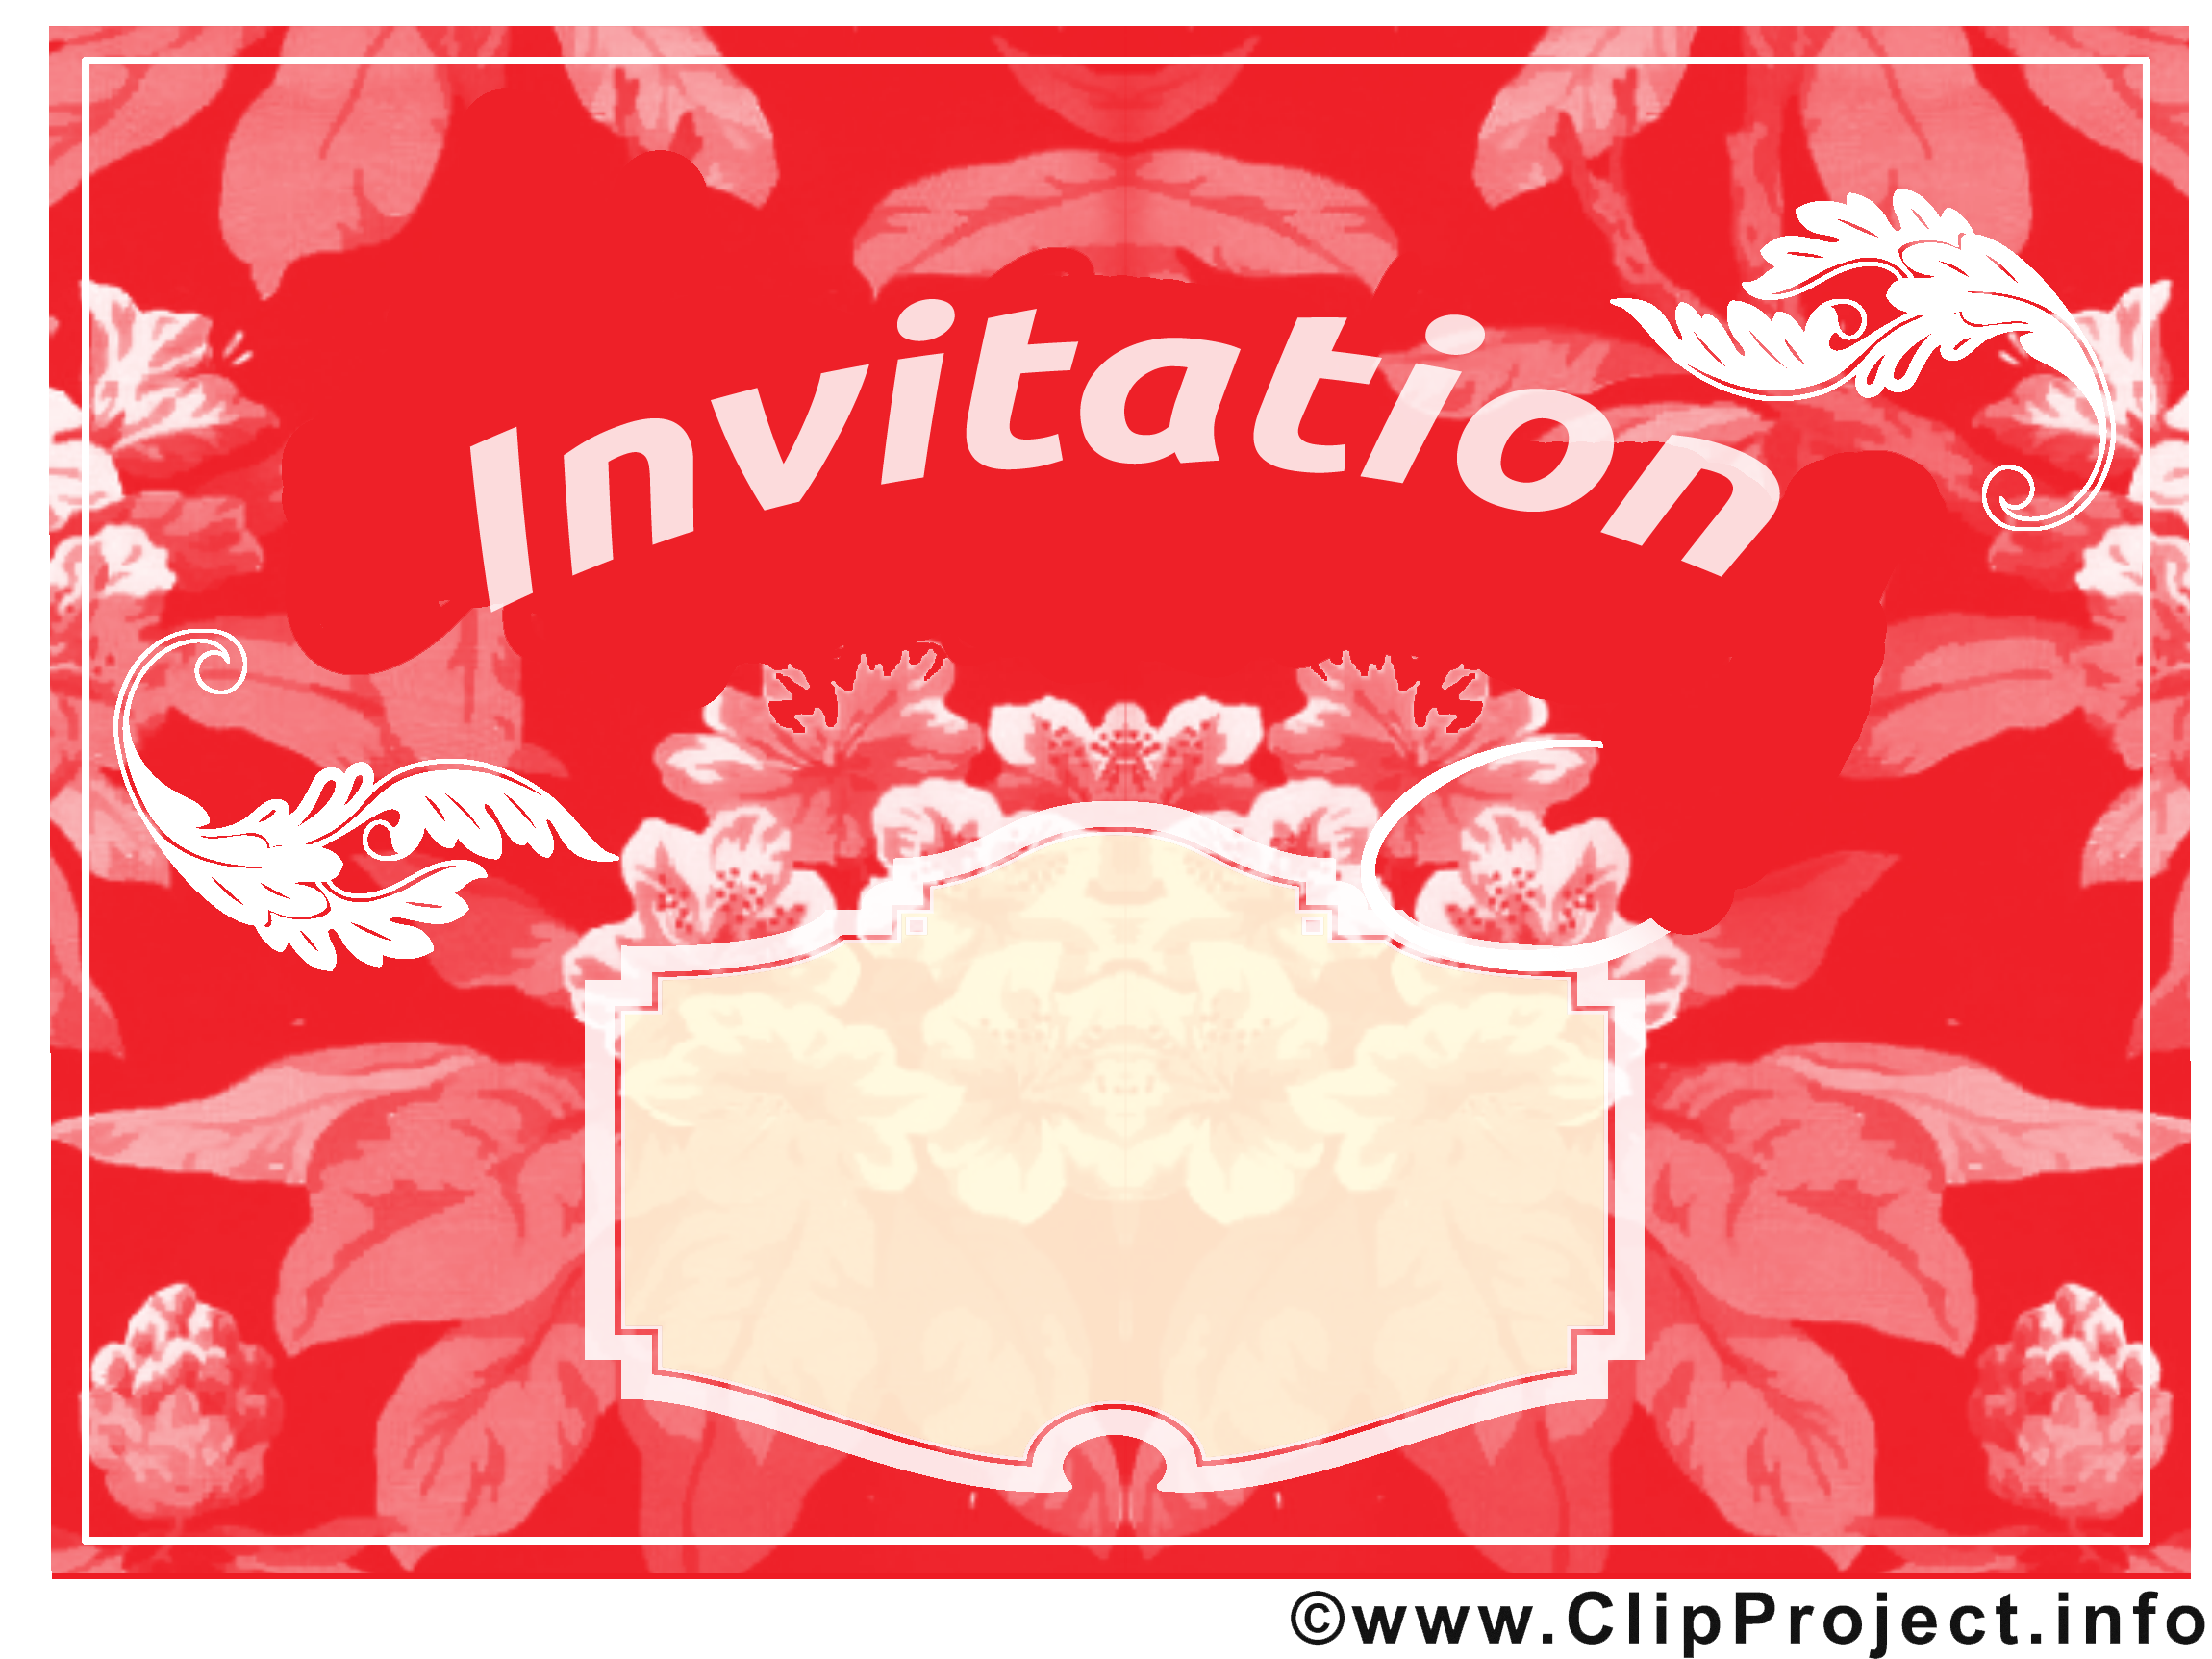 Image Invitation images cliparts